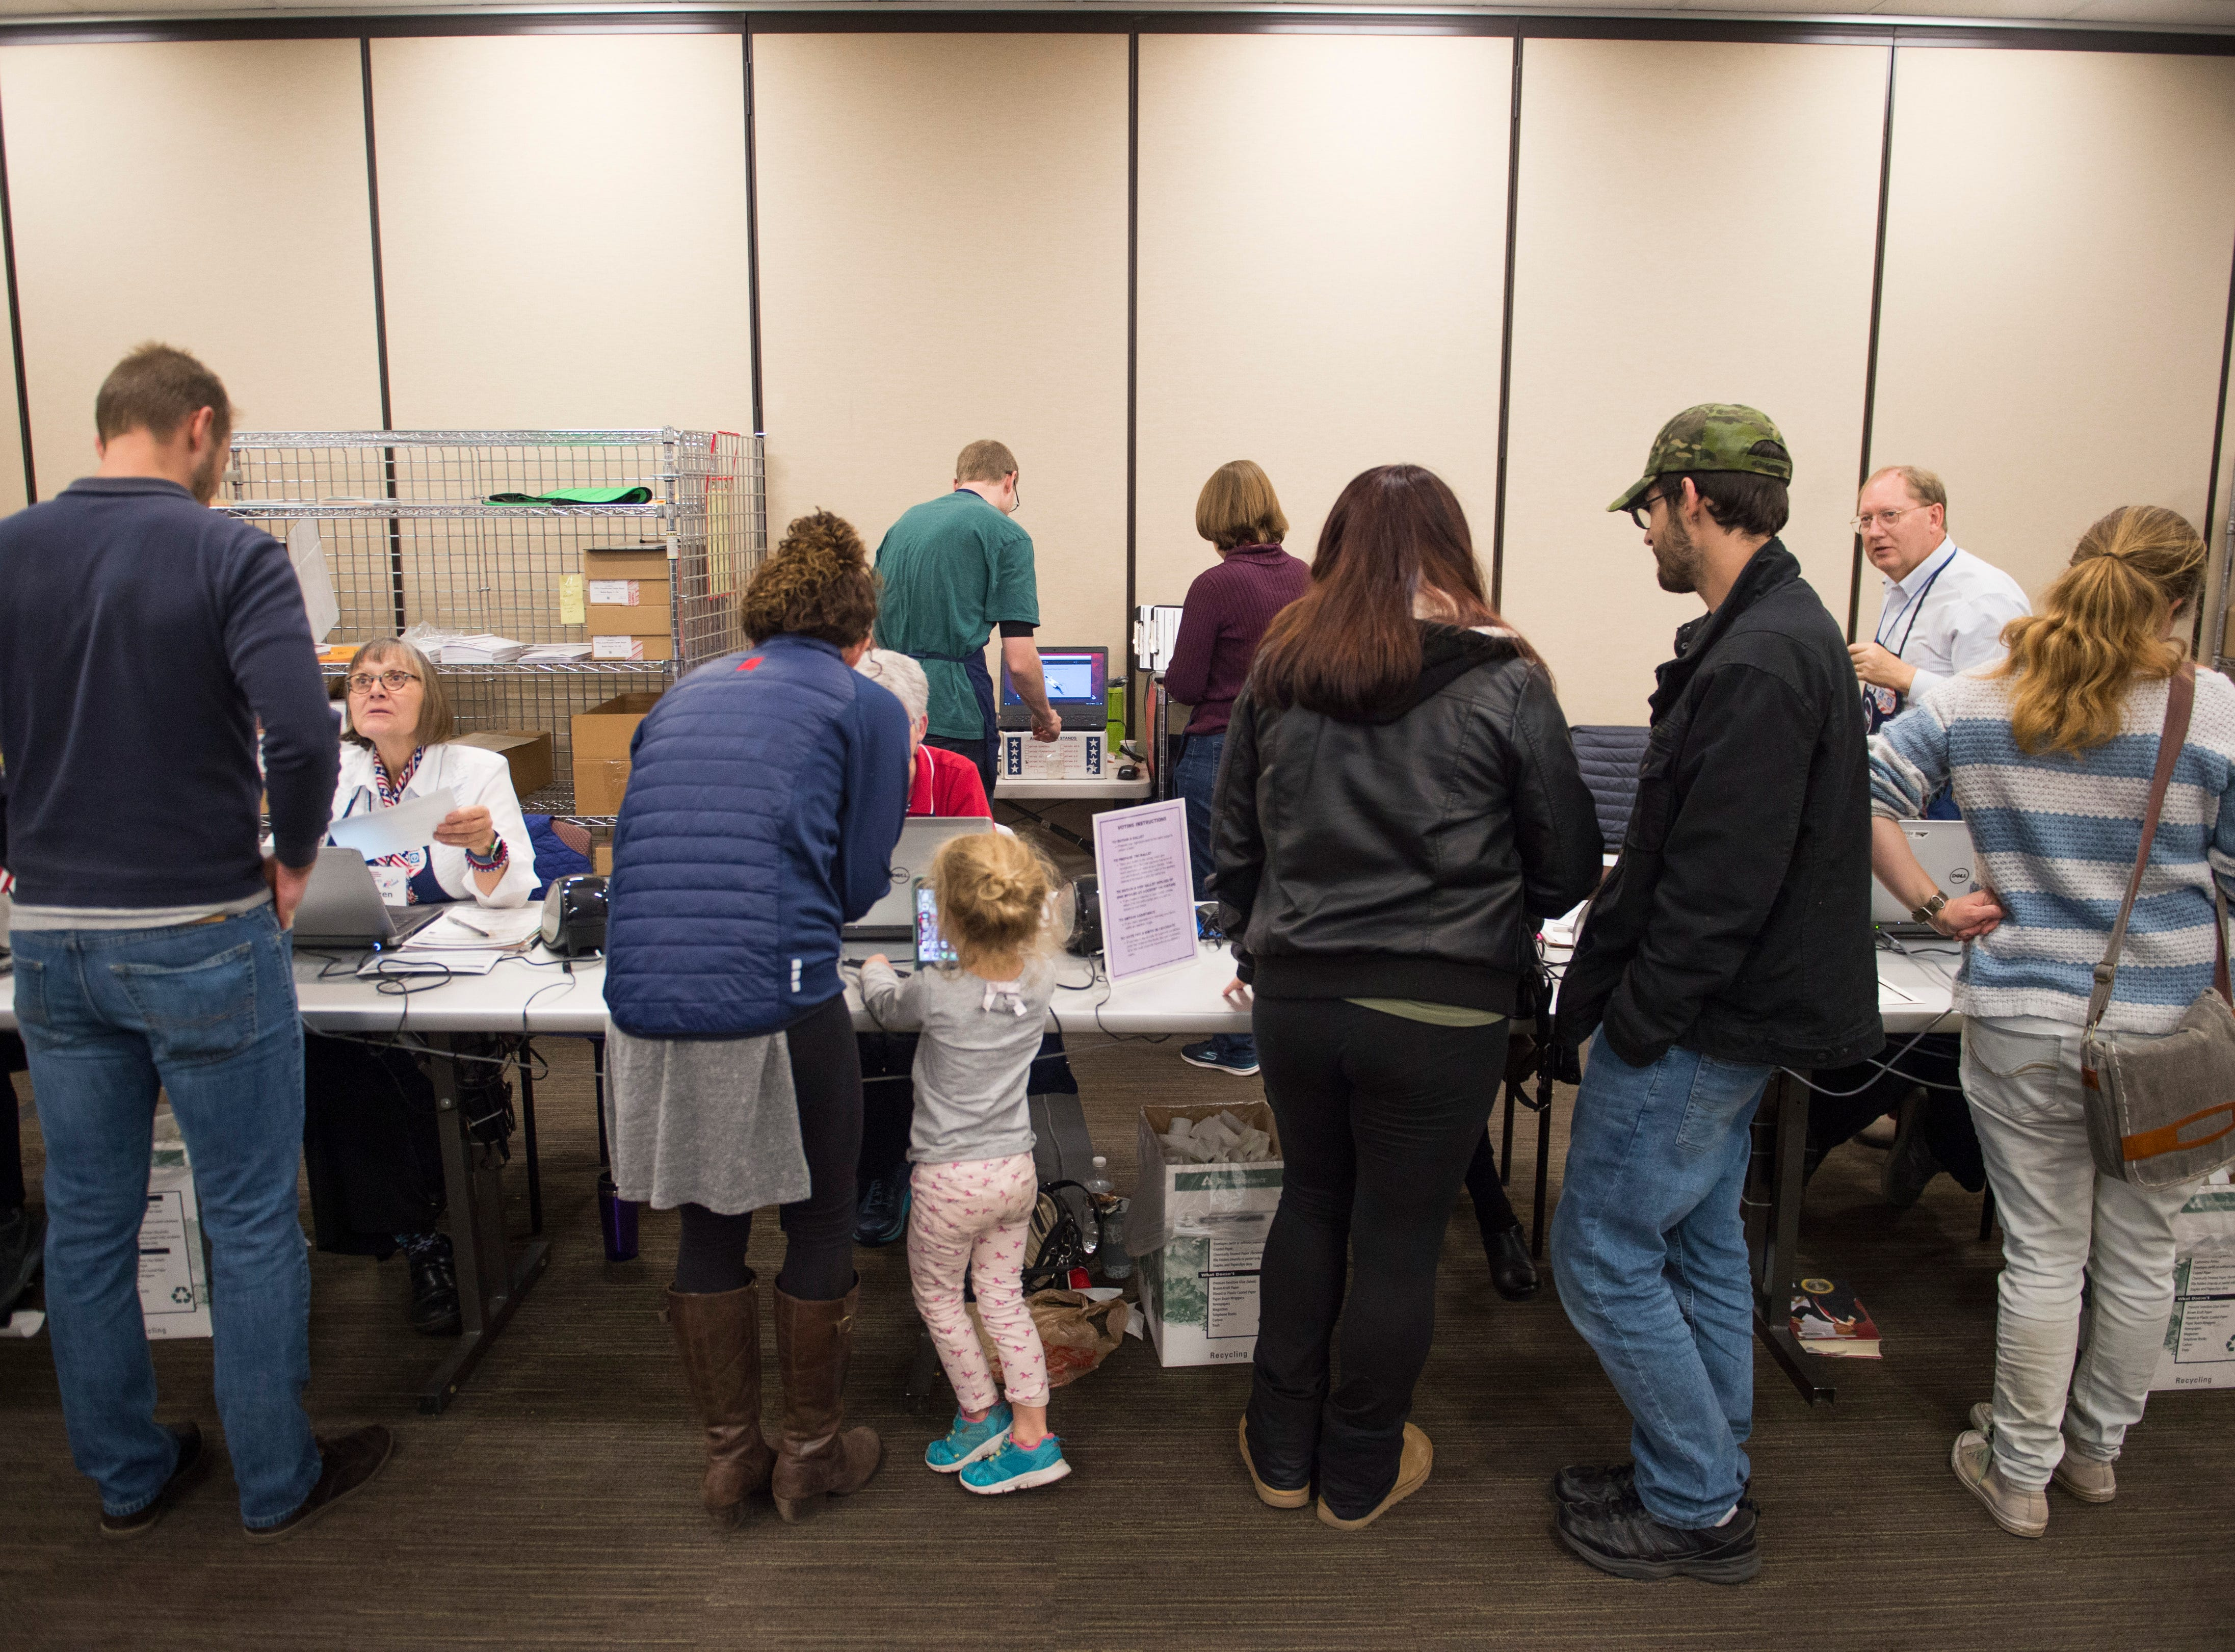 Volunteers work to check-in a steady stream of voters at the Larimer County Courthouse on Election Day, Monday, November 6, 2018.